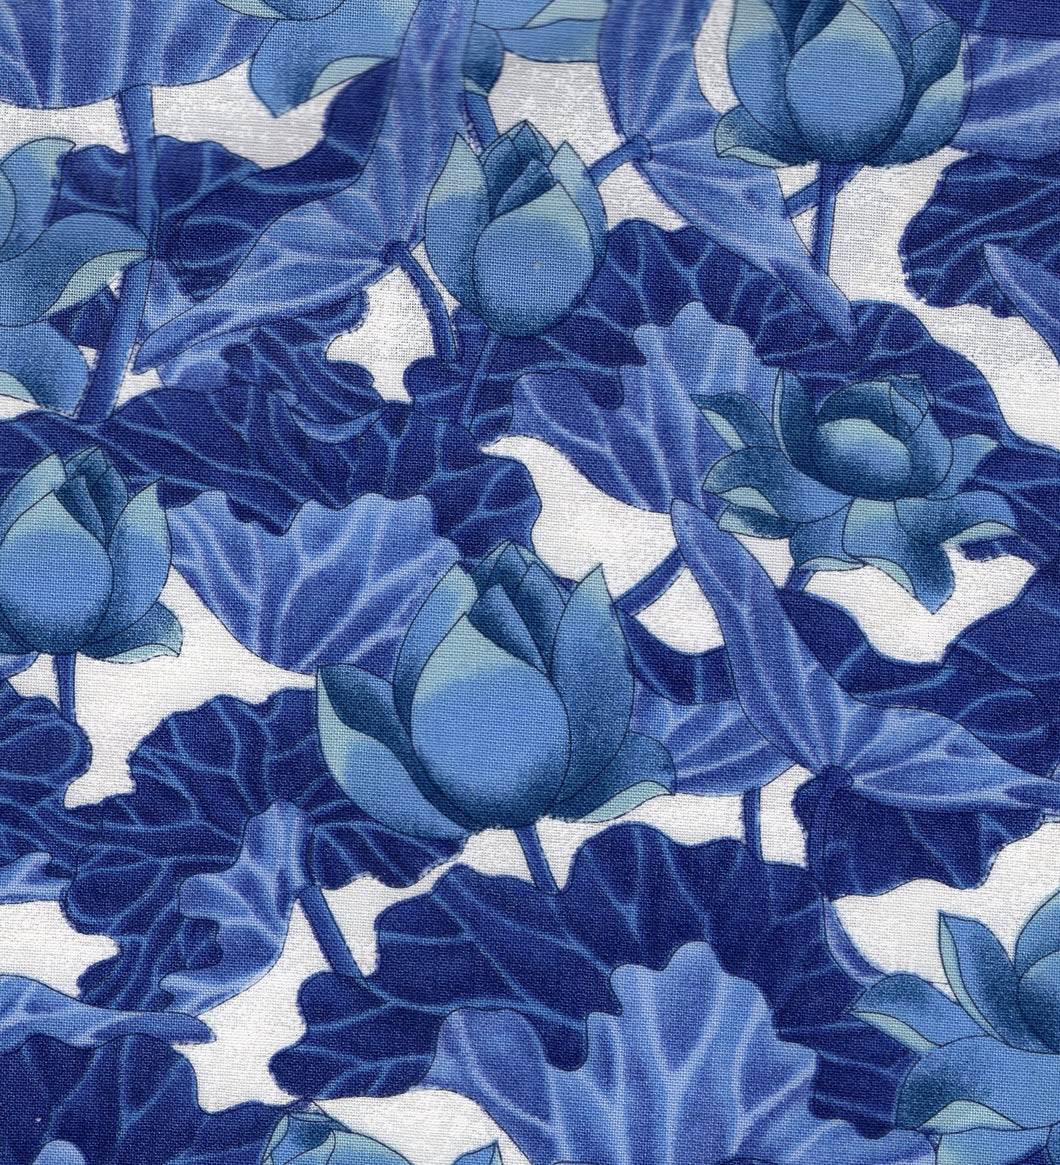 Lotus Blossoms Blue / White flo350